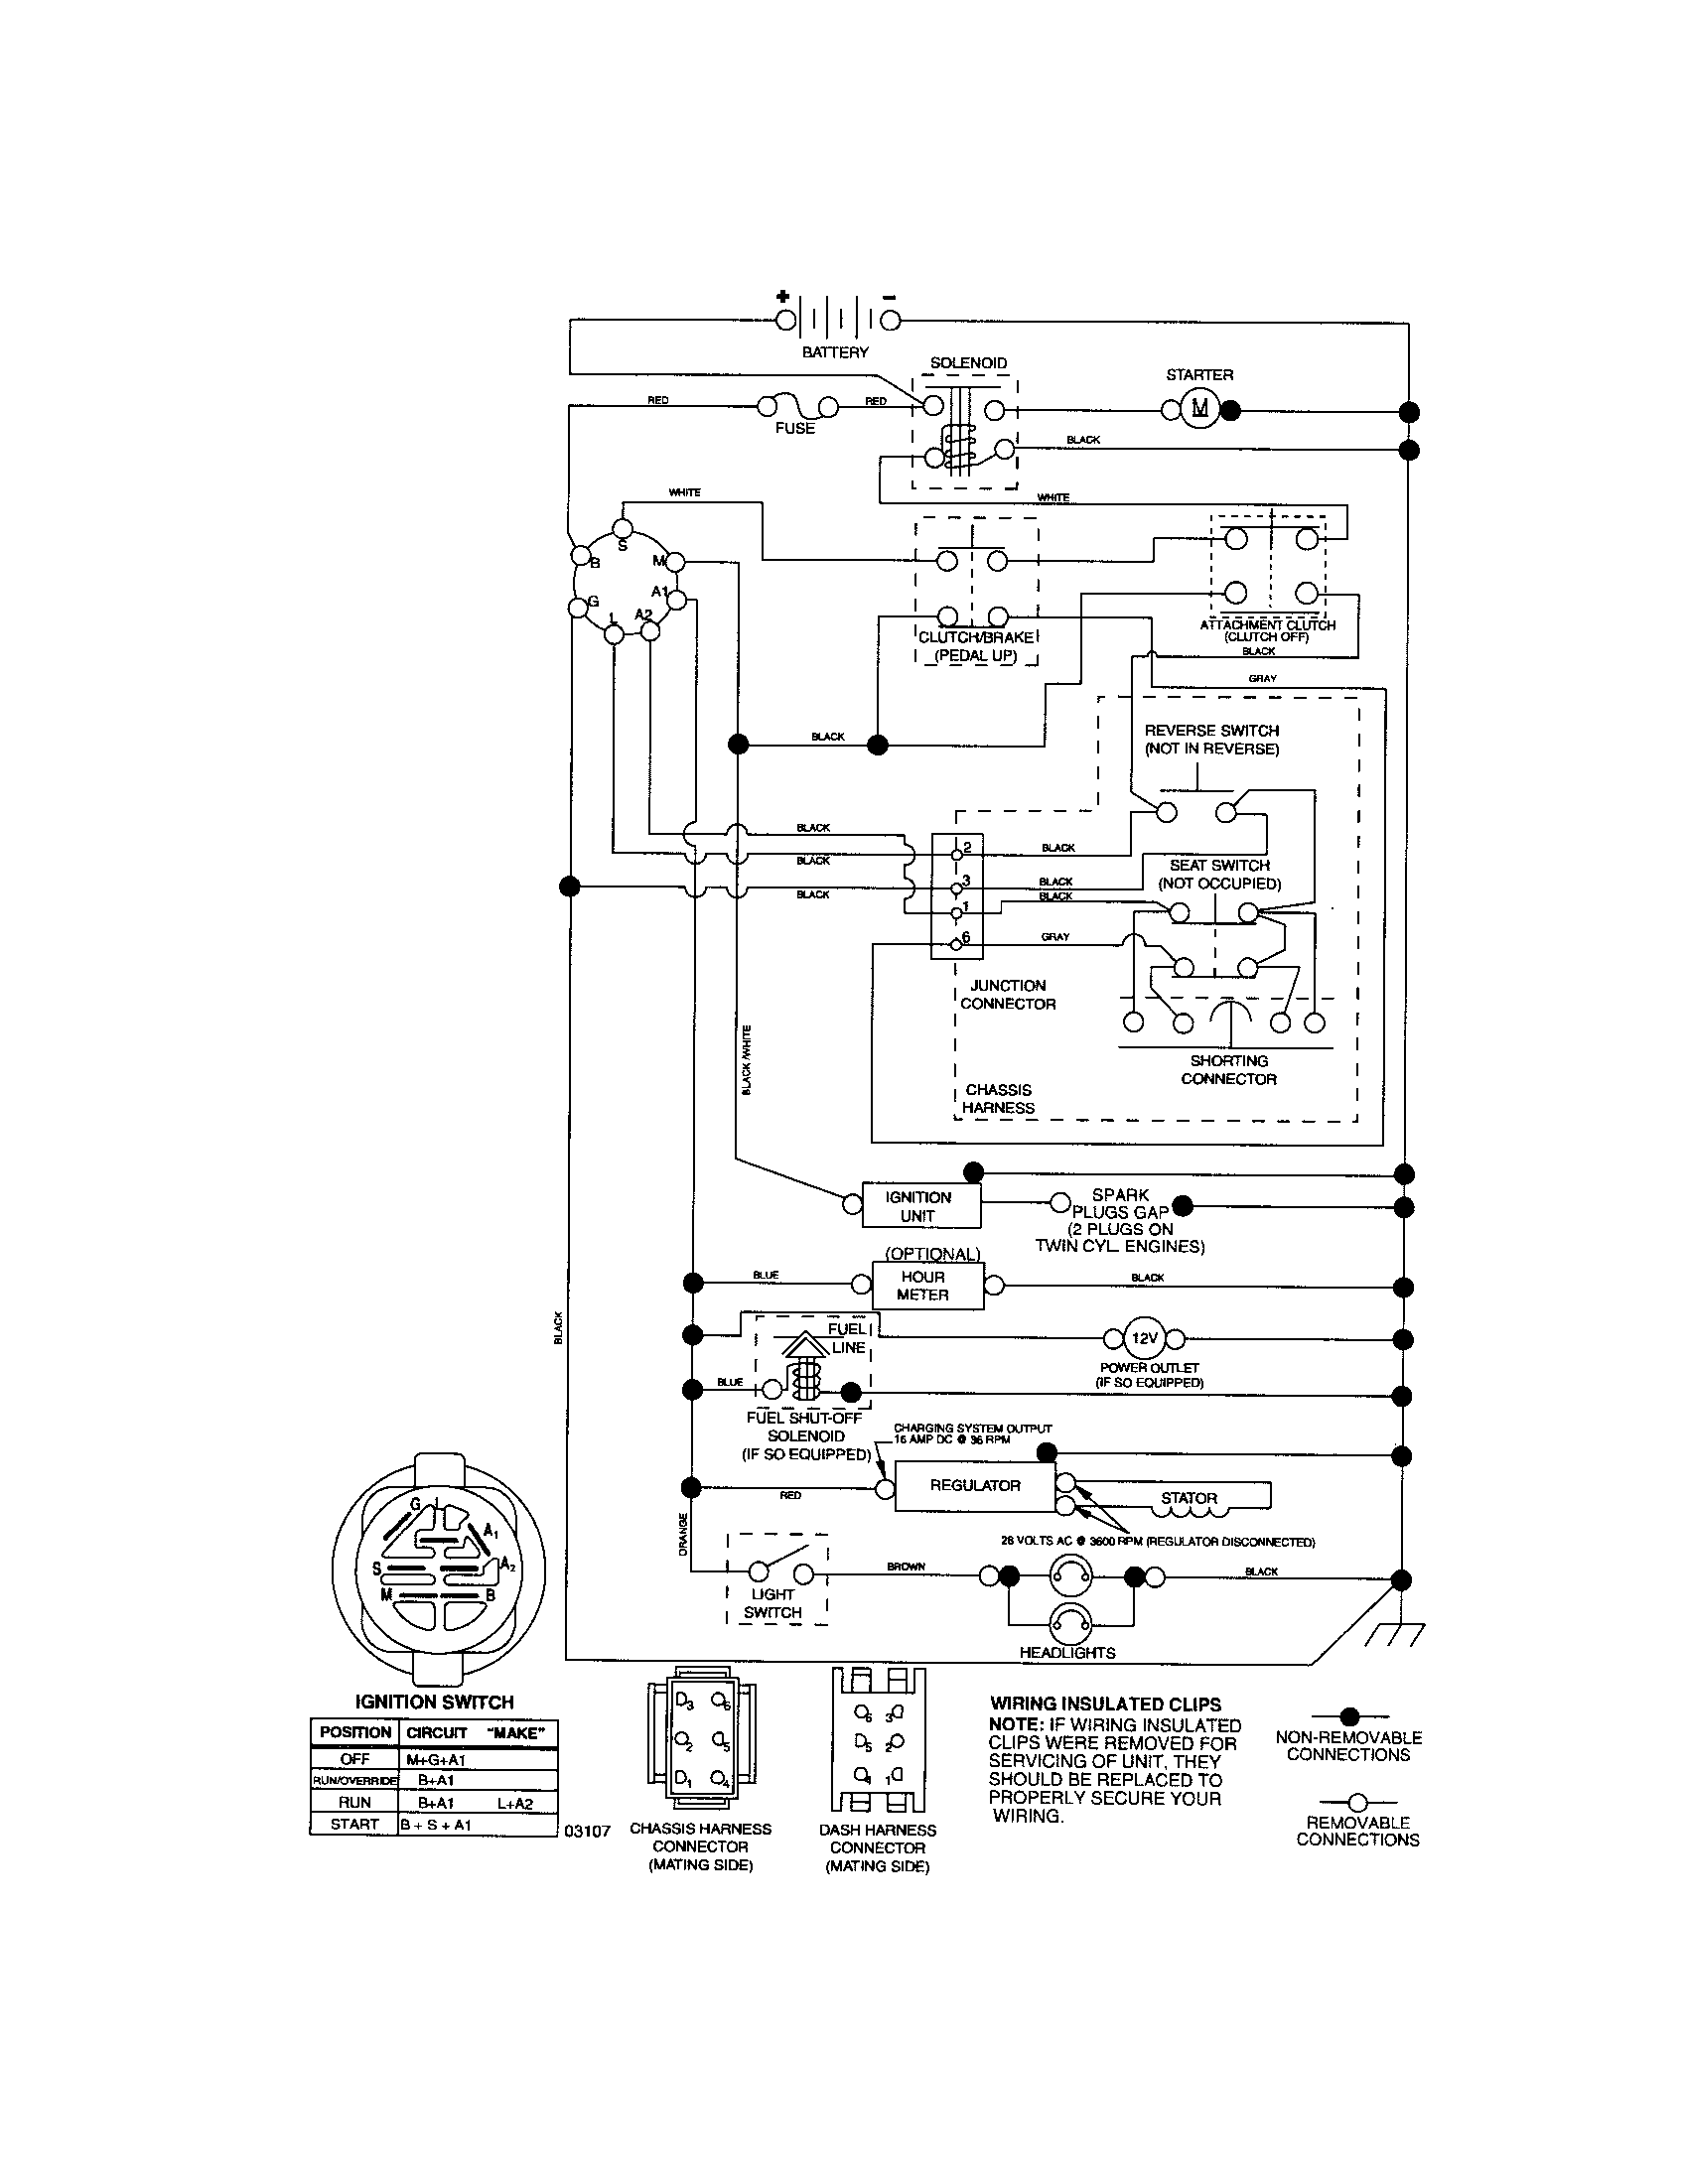 engine wiring diagram lawn mower ignition switch wiring diagram